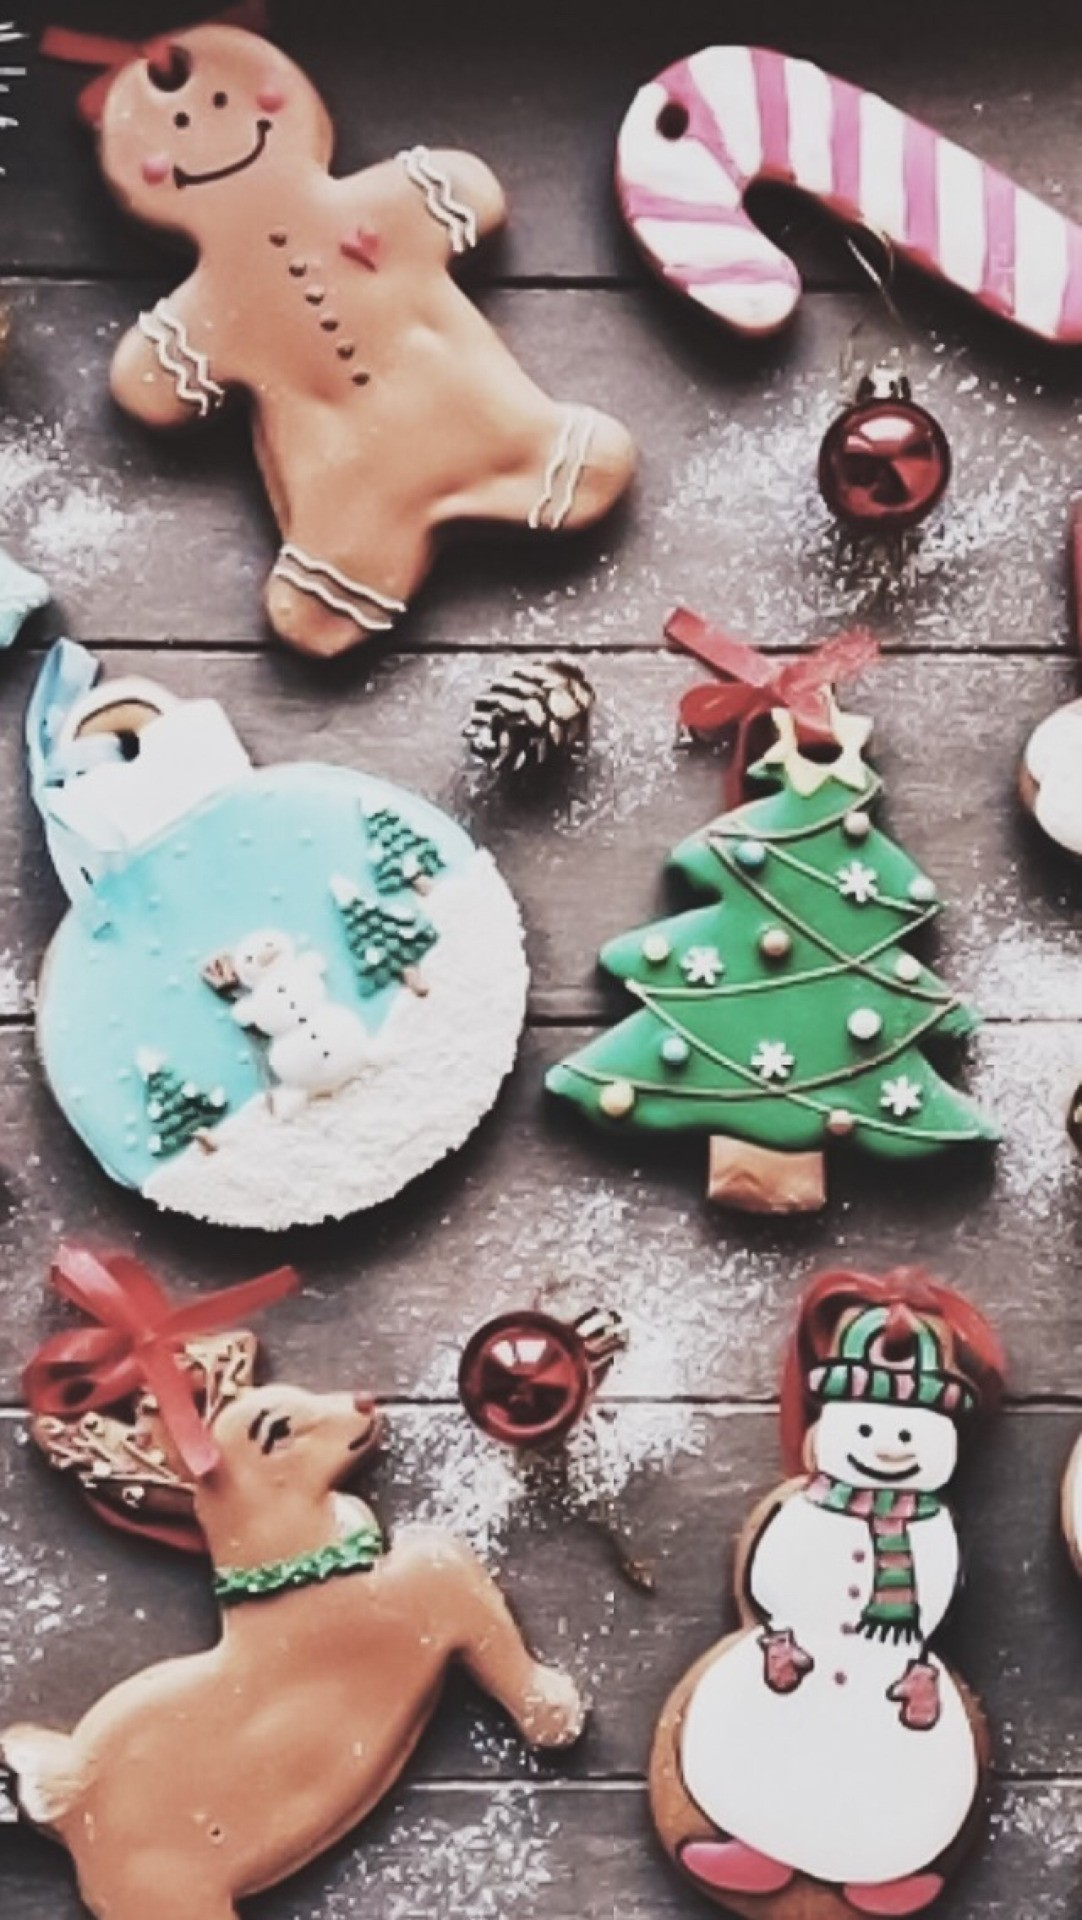 Cute Nike Wallpapers 20 Christmas Backgrounds Tumblr 183 ① Download Free